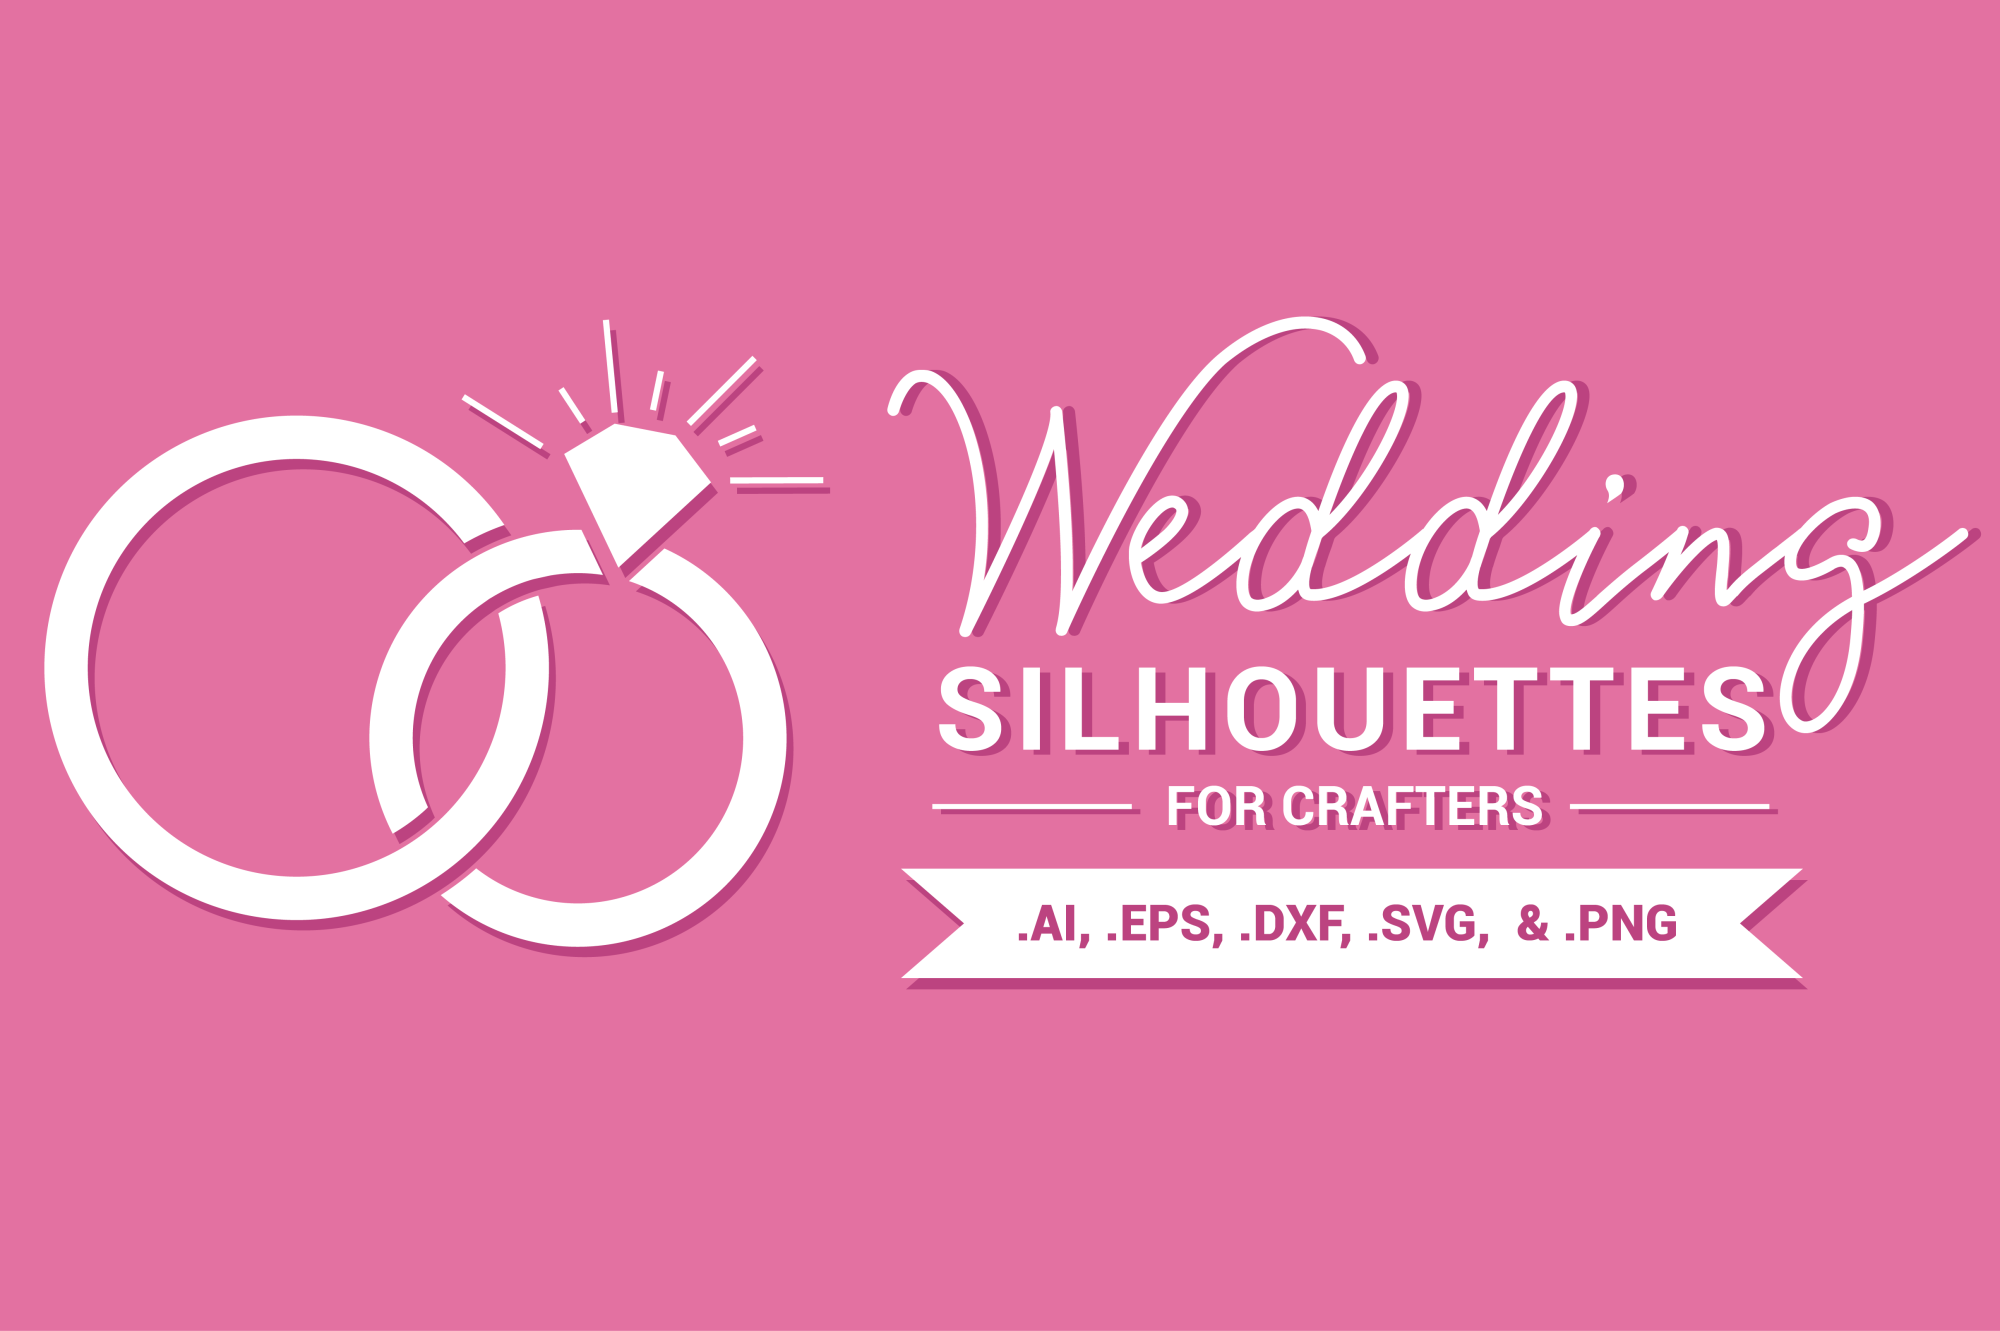 Wedding Silhouettes for Crafters example image 1